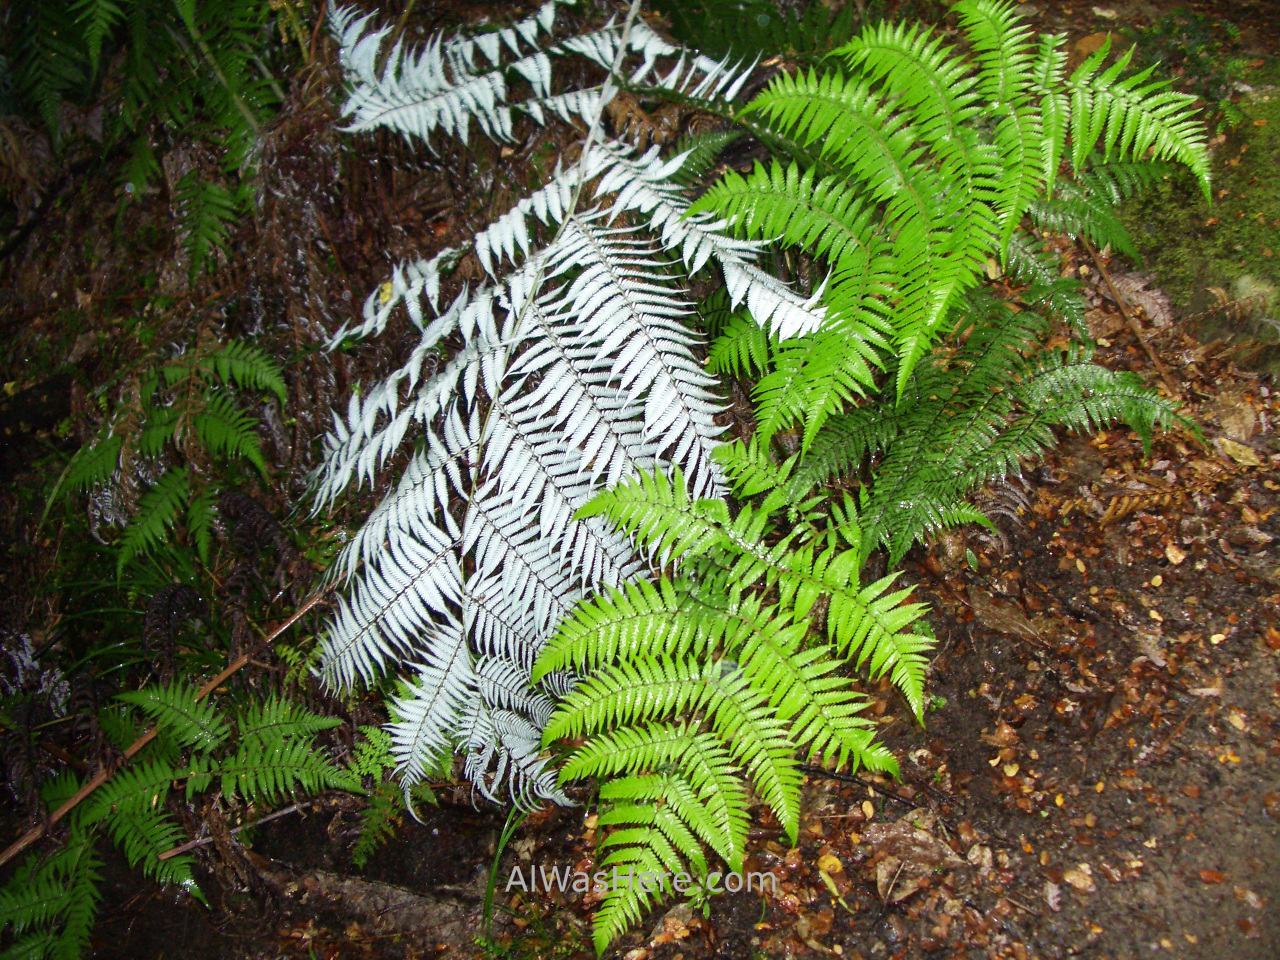 ABEL TASMAN NATIONAL PARK Helechos blancos white ferns Nueva Zelanda New Zealand